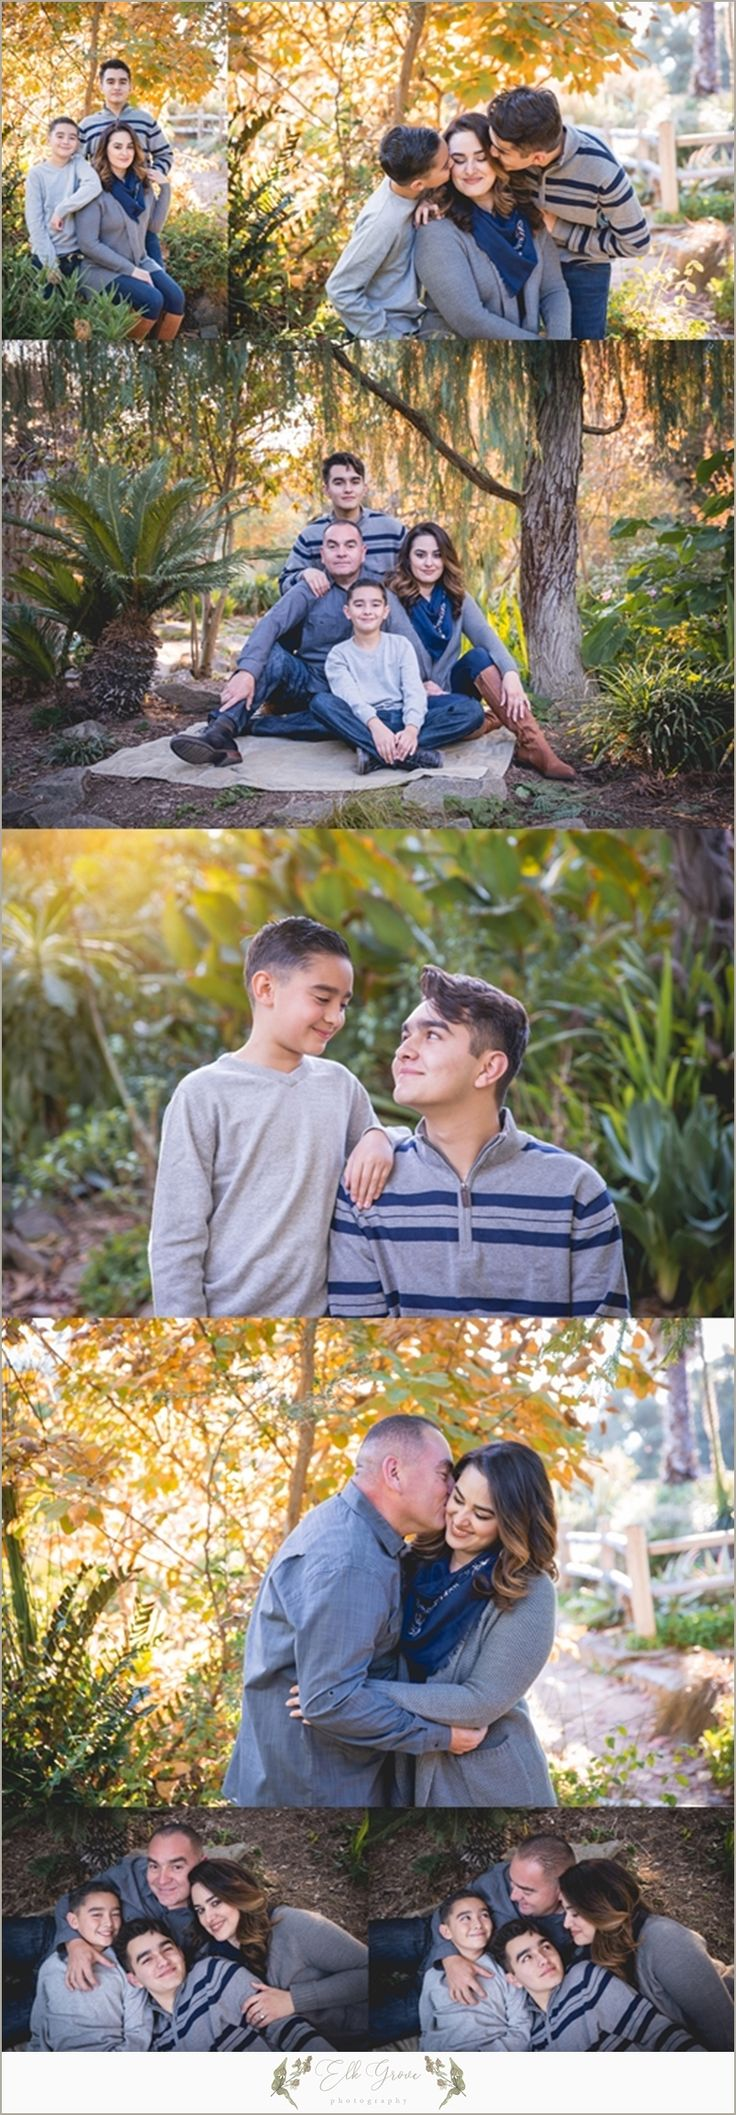 Family of 4. Birthday Pictures. Family Photography by Elk Grove Photography - Natural Light - Posing Ideas for Families, Siblings, Parents, Couples, and Large Groups. Unposed Candid Ideas. Family Photography Outfit Ideas and Color Palettes. Sacramento, CA.